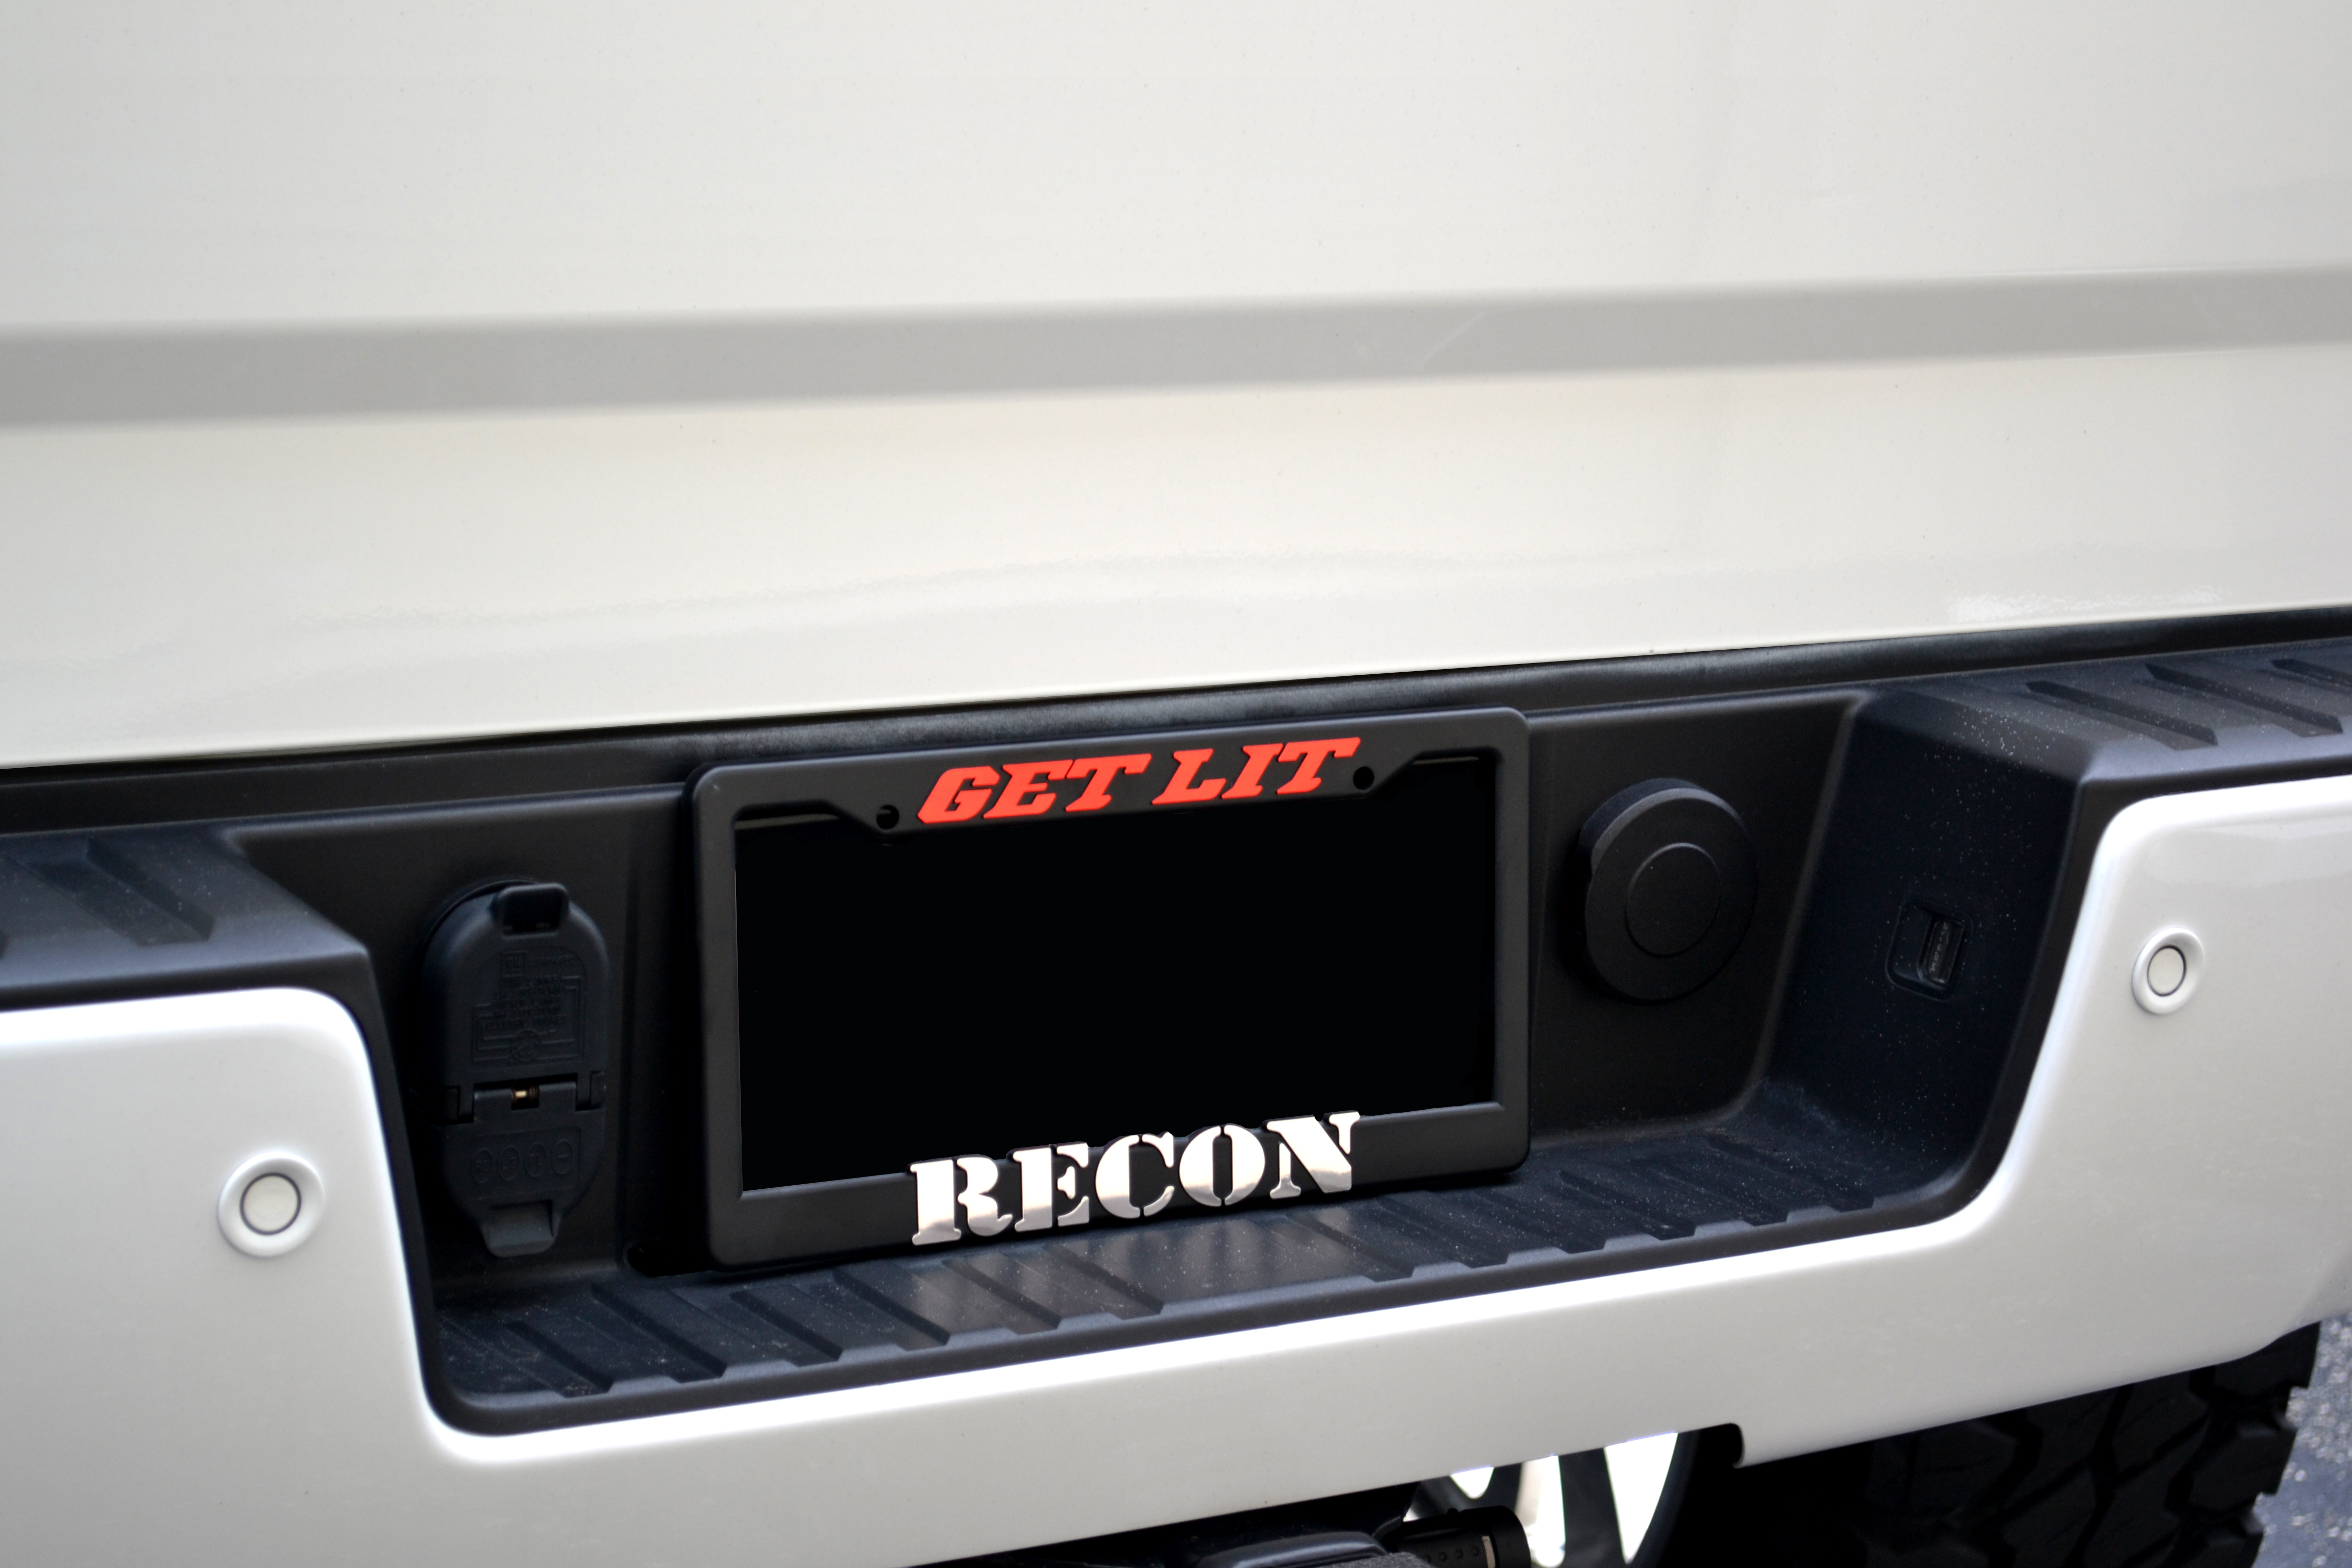 GET LIT Recon Plate Frame - Truck & Car Parts - 264330 | RECON Truck ...